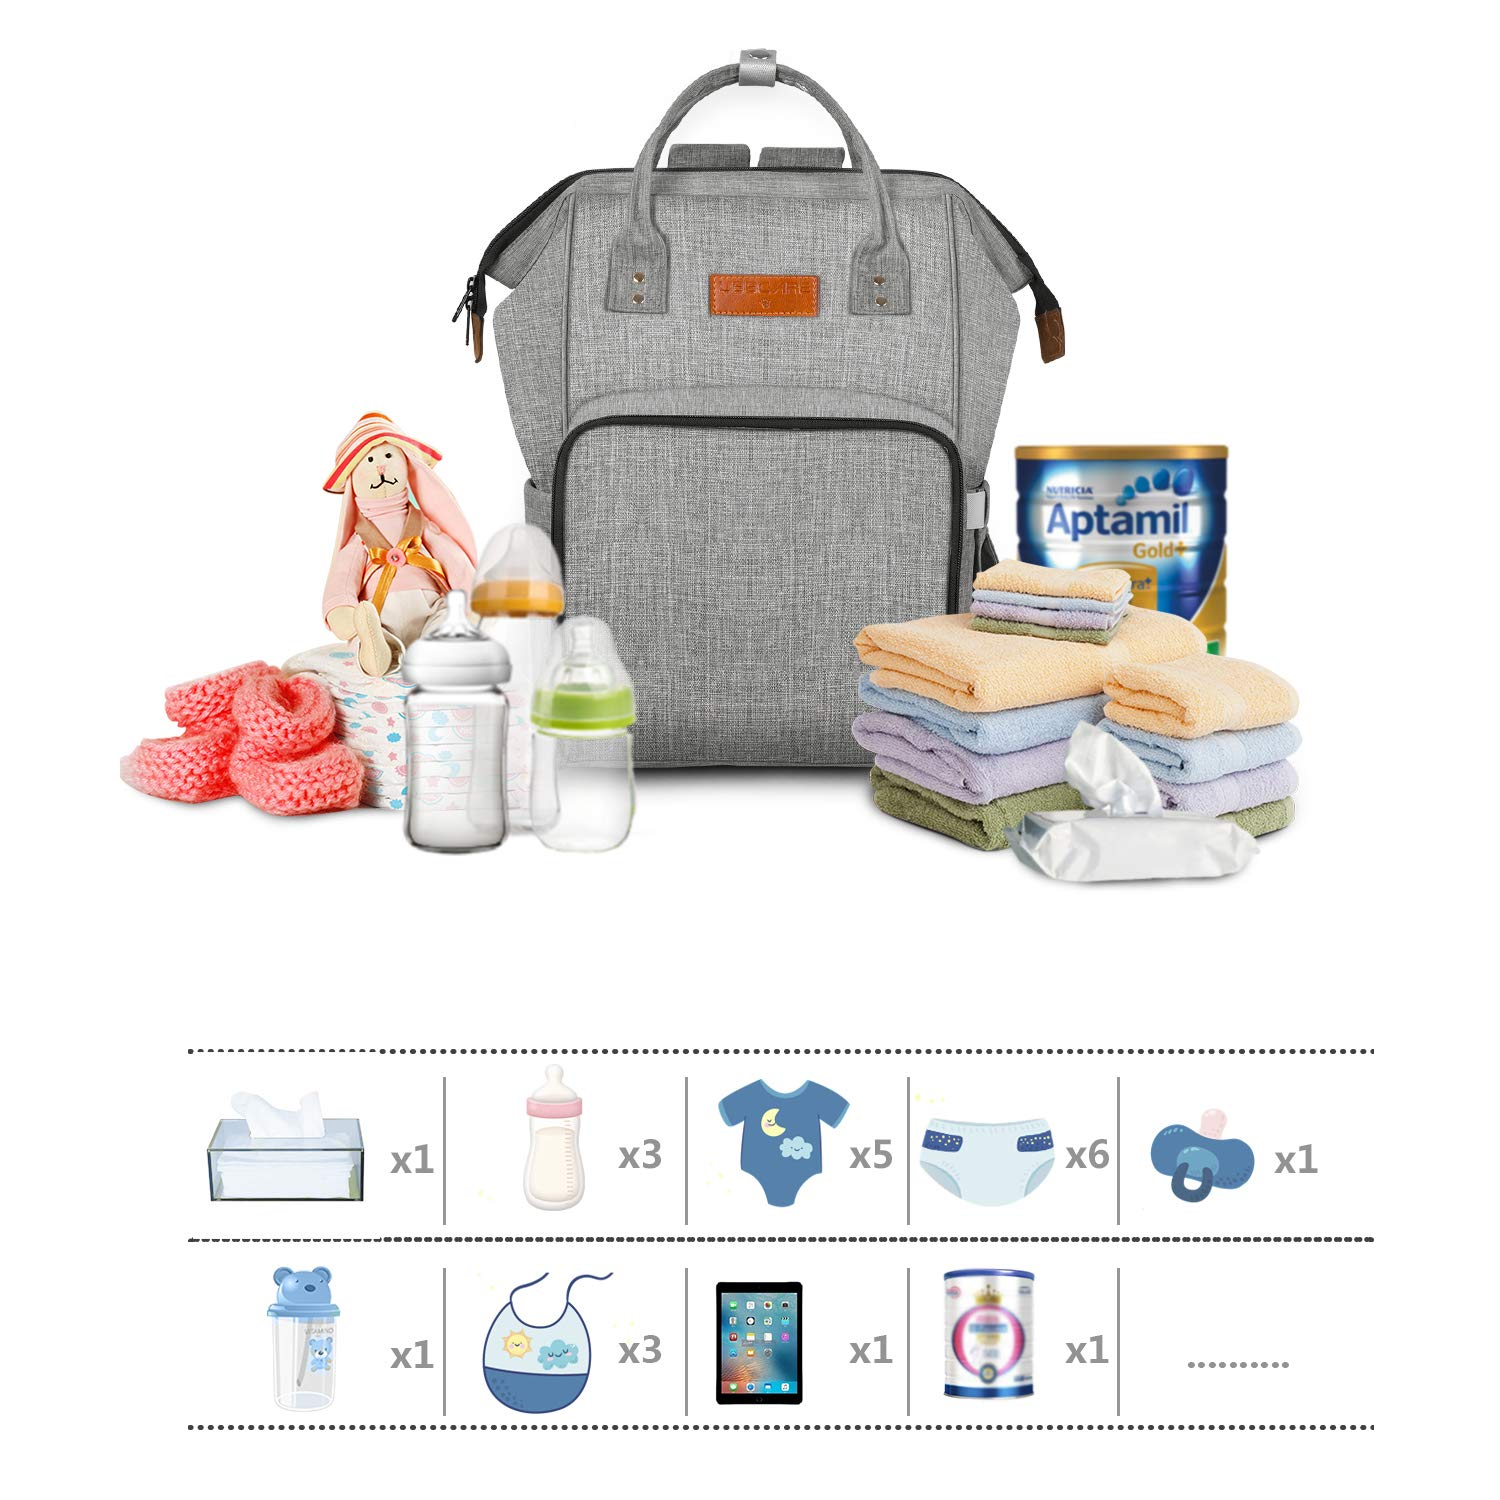 16.5 11.8 8.3in Large Capacity Waterproof Multi-Function Diaper Tote Bag Backpack Rucksack with Insulated Pockets for Mom Baby Care HBselect Baby Changing Bag Rucksack Helper Stylish Design